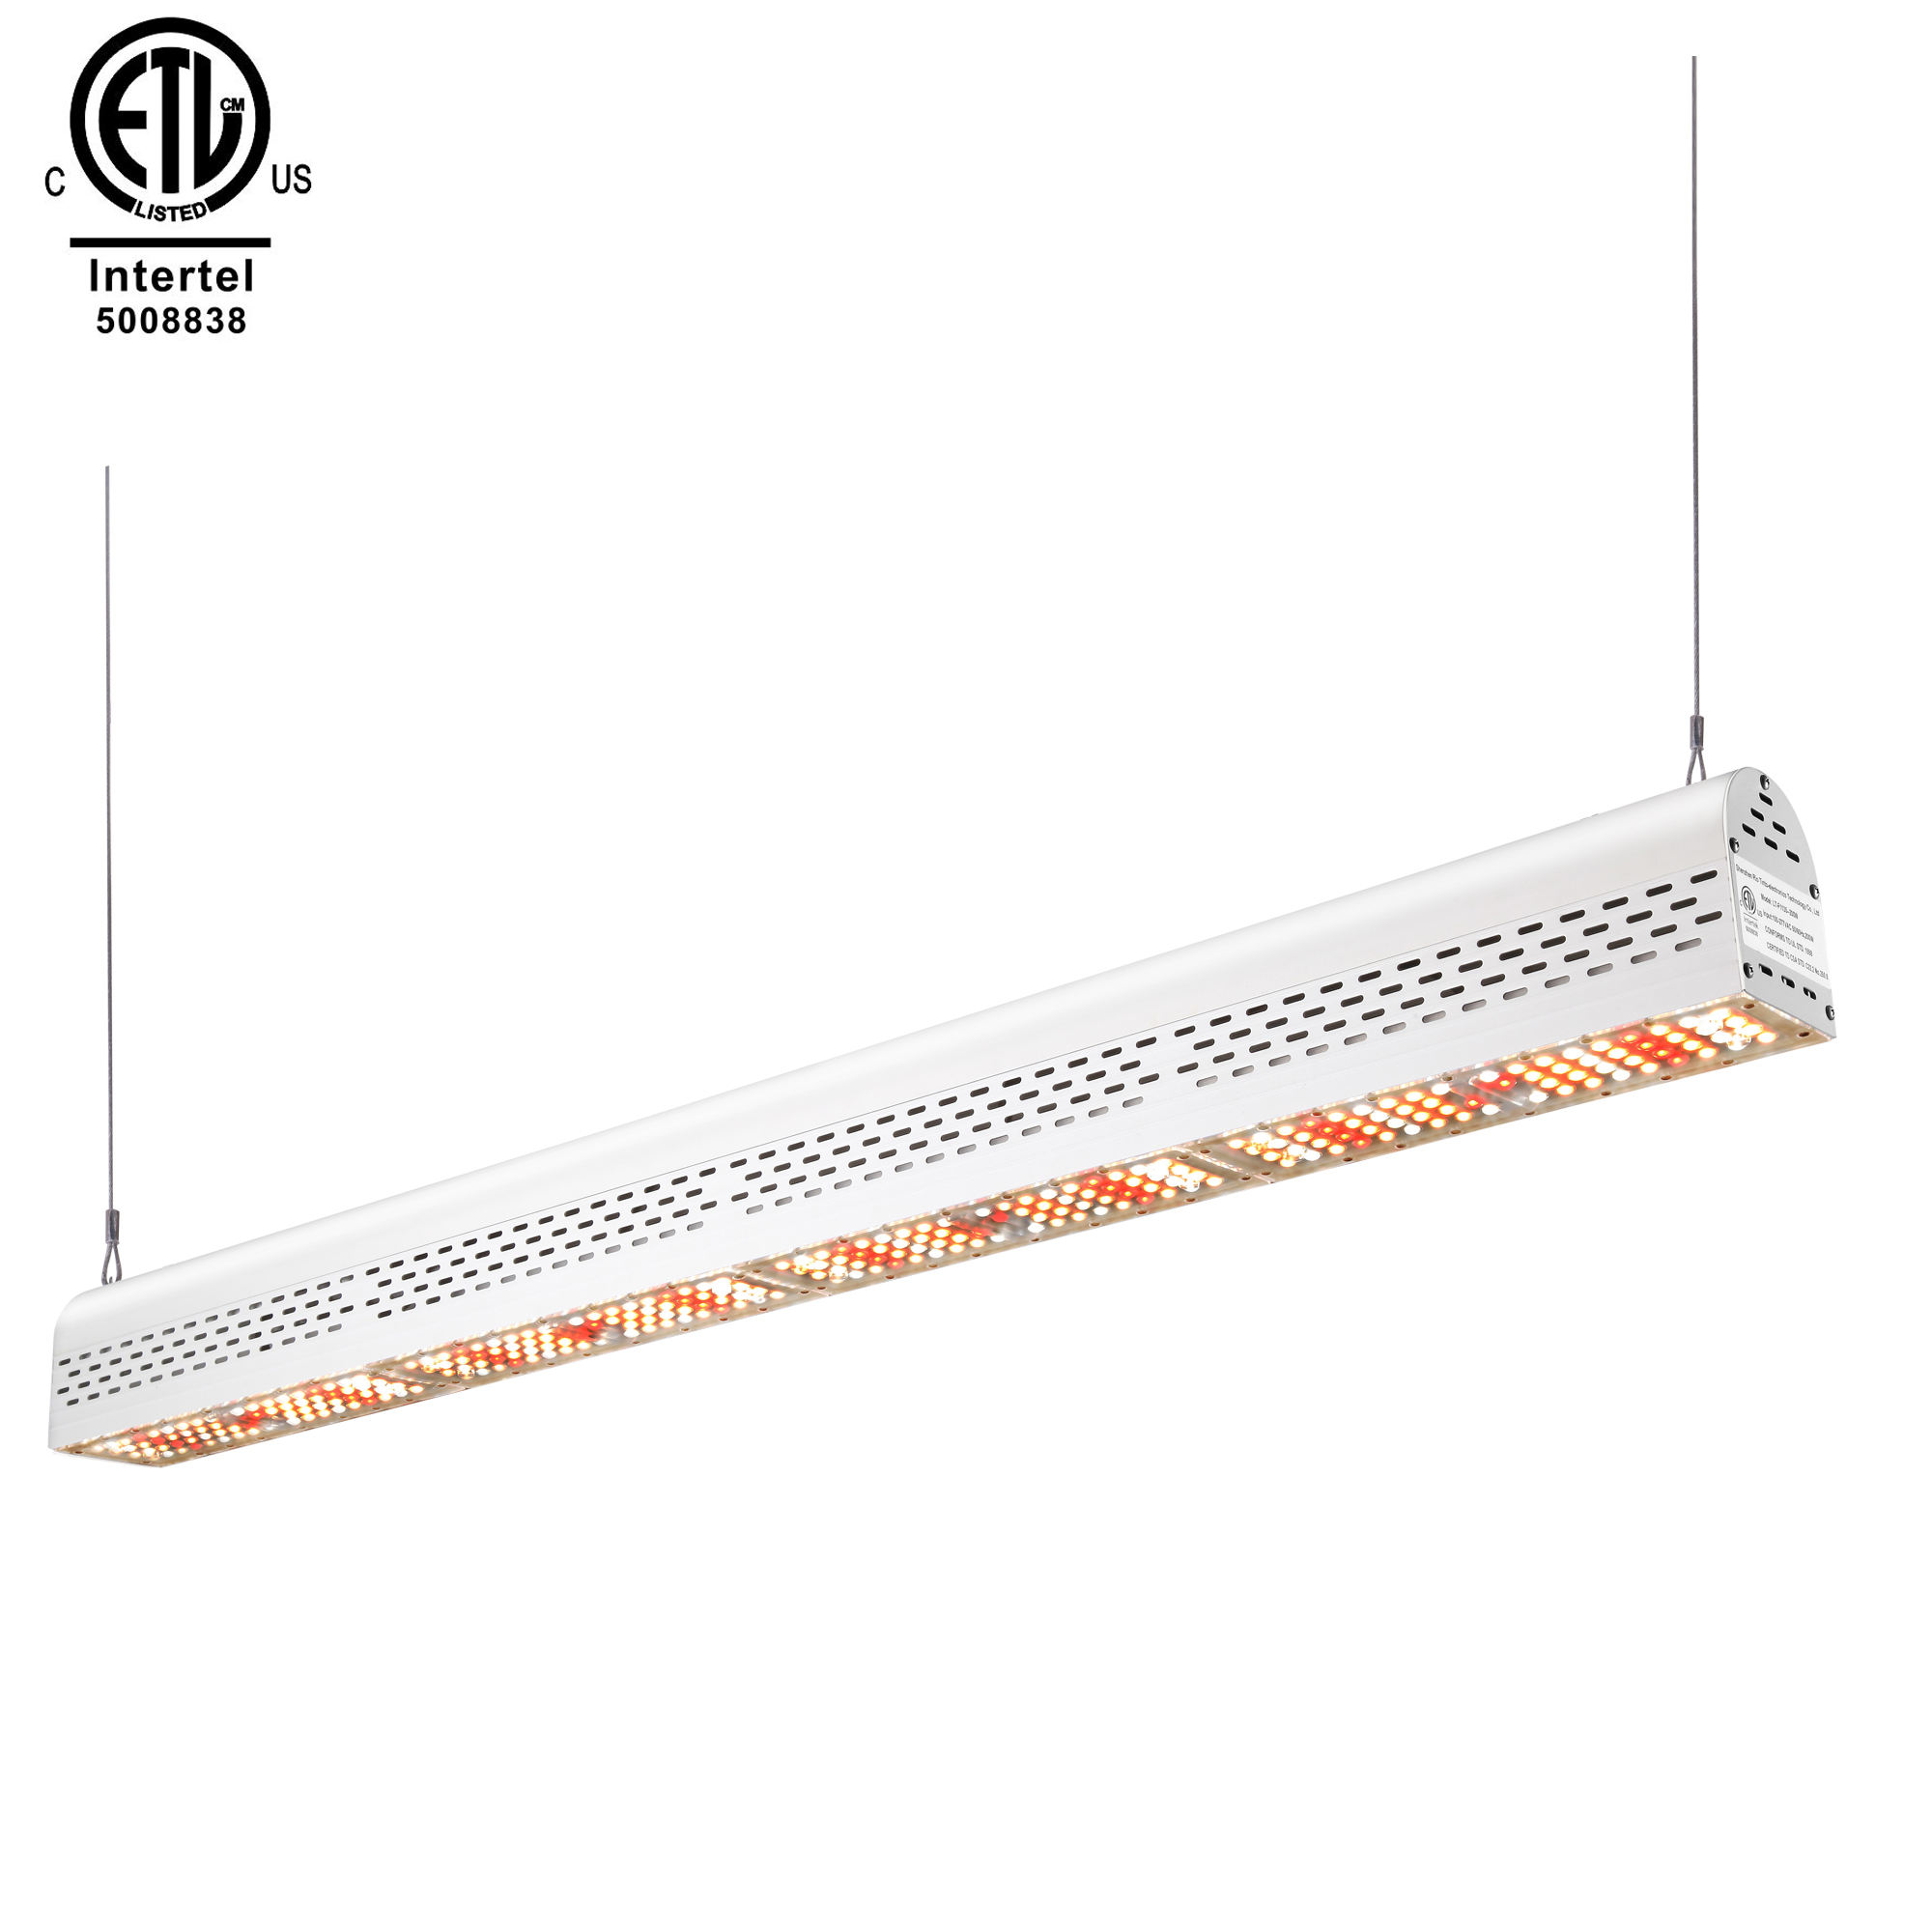 China ETL lista igual a 200W 400W 500W 800W 1000W Real 50W 100W 150W 200W 300W Bar interior impermeable planta <span class=keywords><strong>LED</strong></span> crece la luz